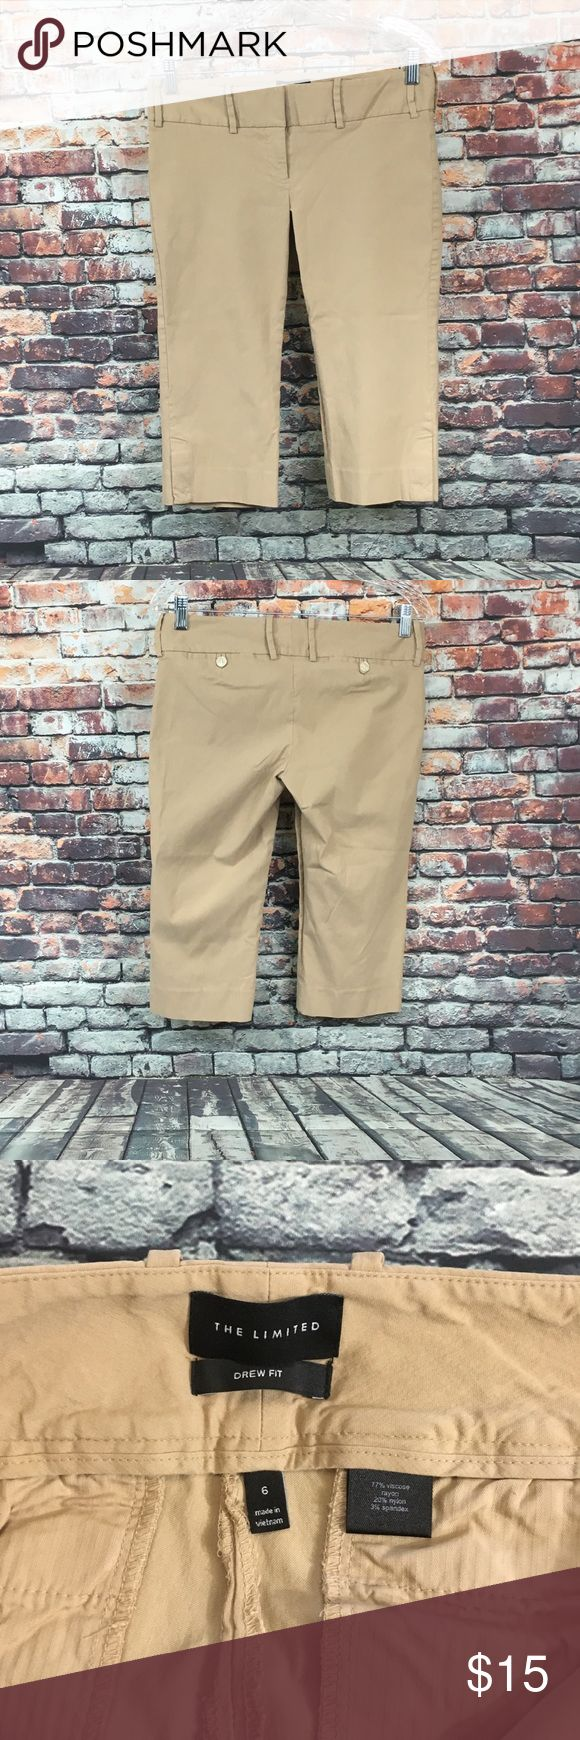 The limited Drew Fit Women's khaki capris size 6 The limited Drew Fit Women's khaki capris size 6 perfect condition see pictures for measurements!!! The Limited Pants Capris